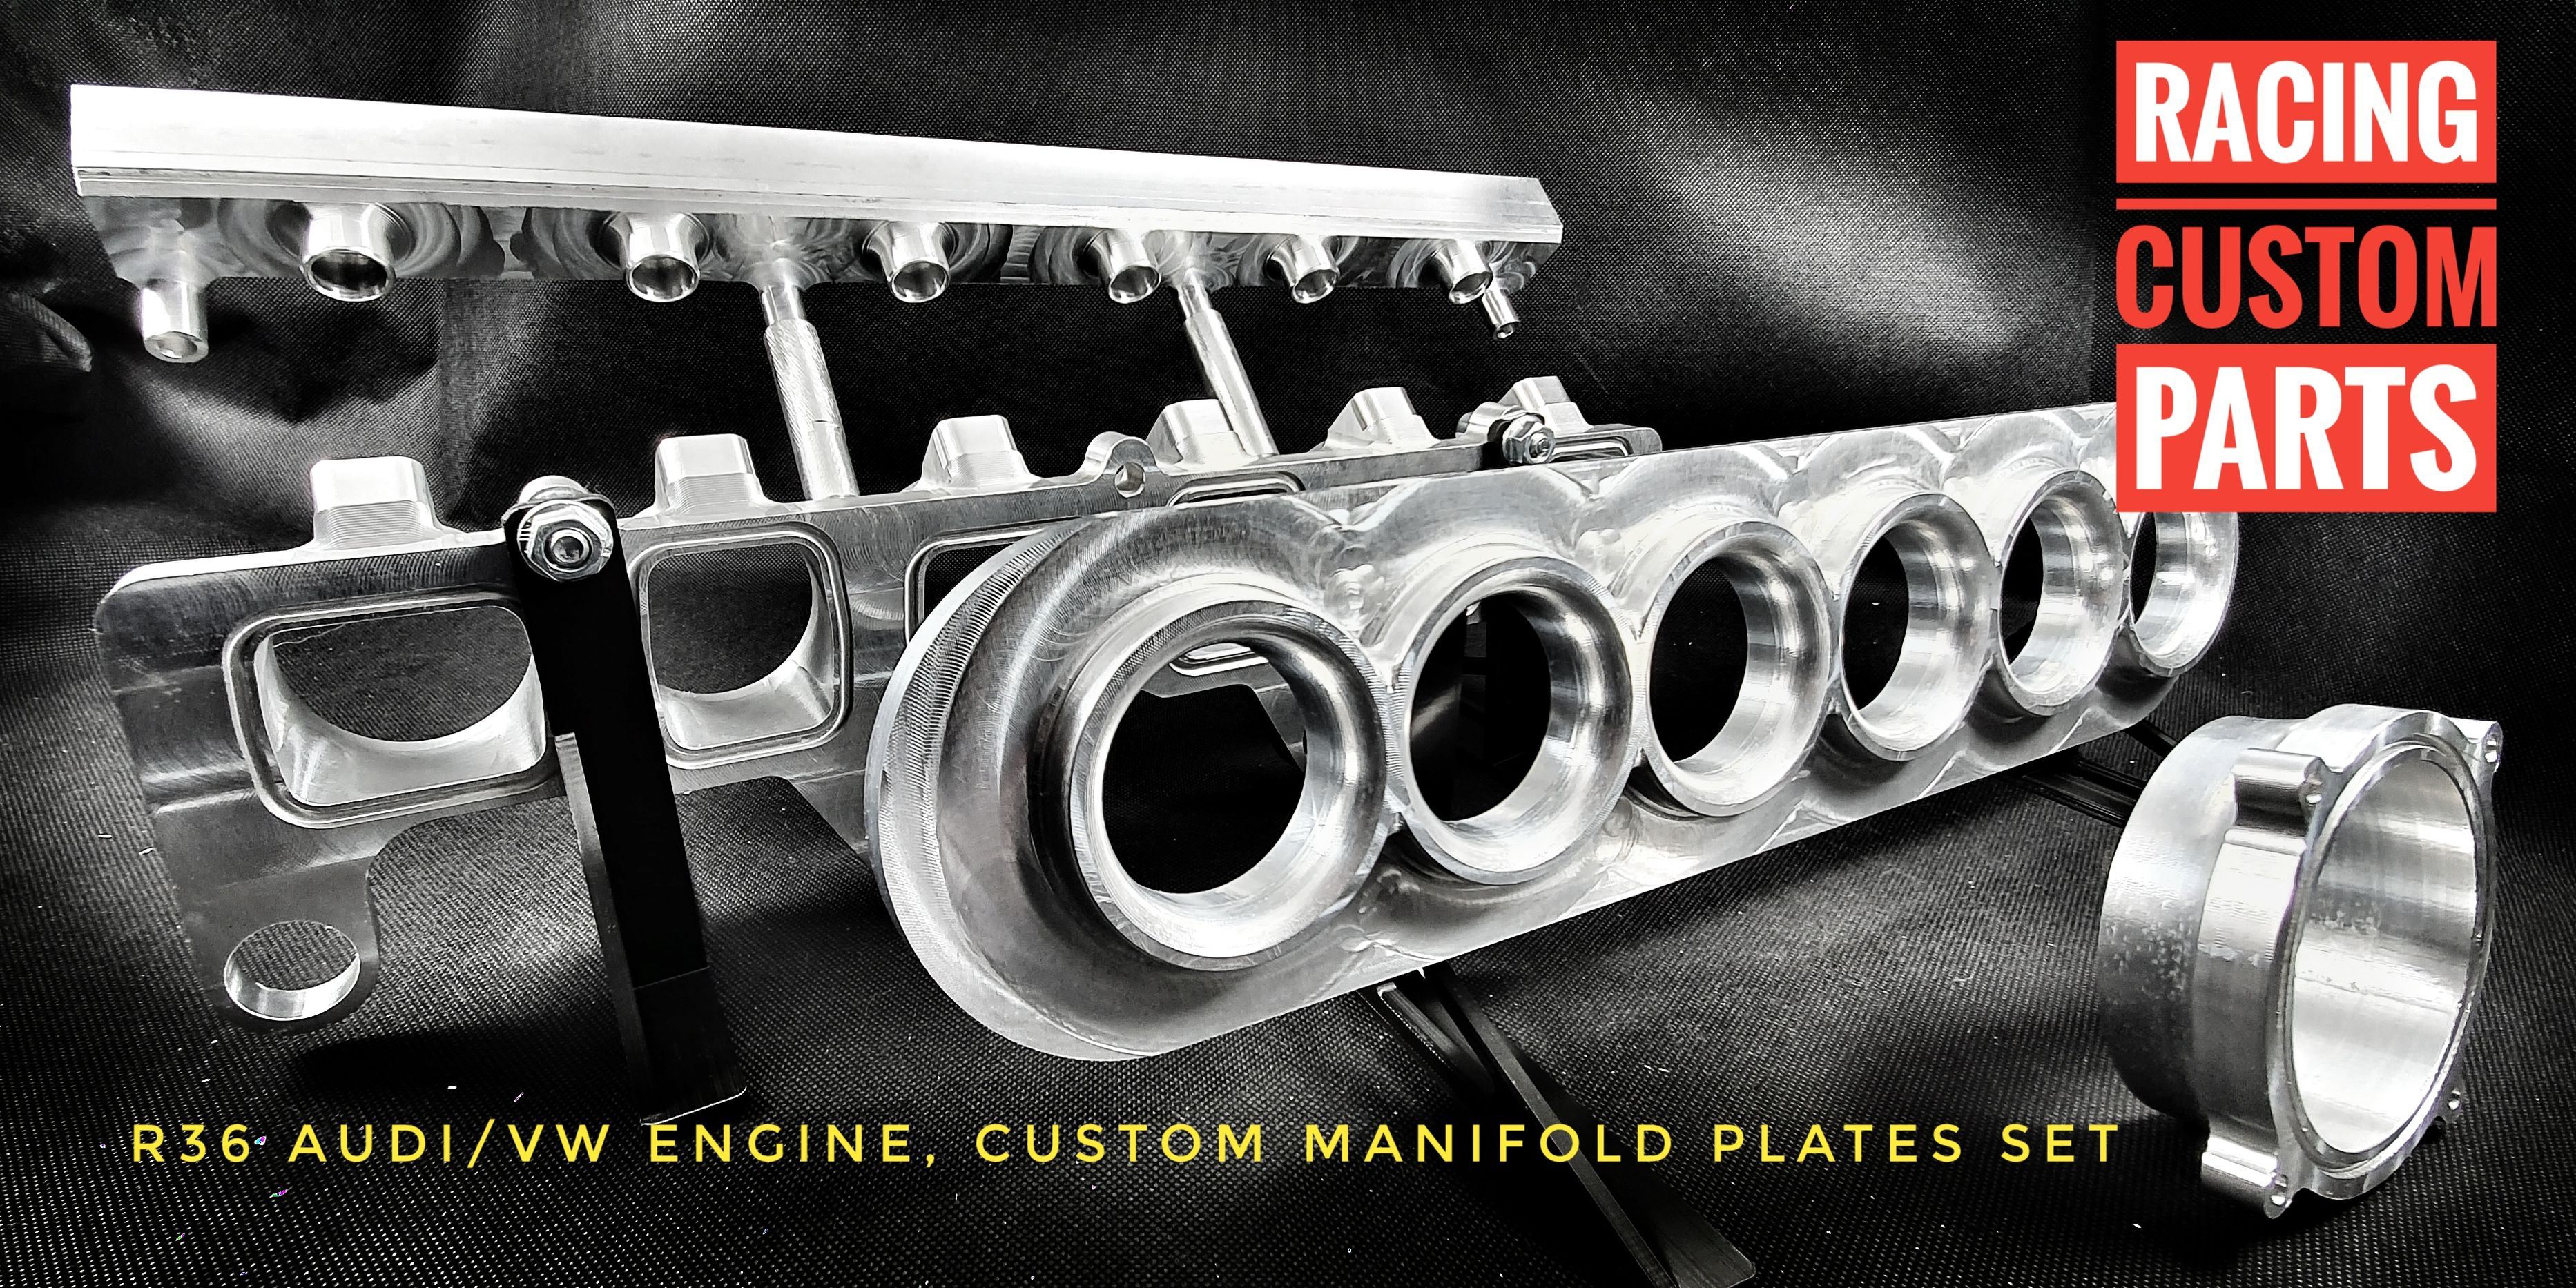 R36 audi vw passat 3.6 v6 custom billet cnc intake inlet manifold plate mpi adapter racing custom parts